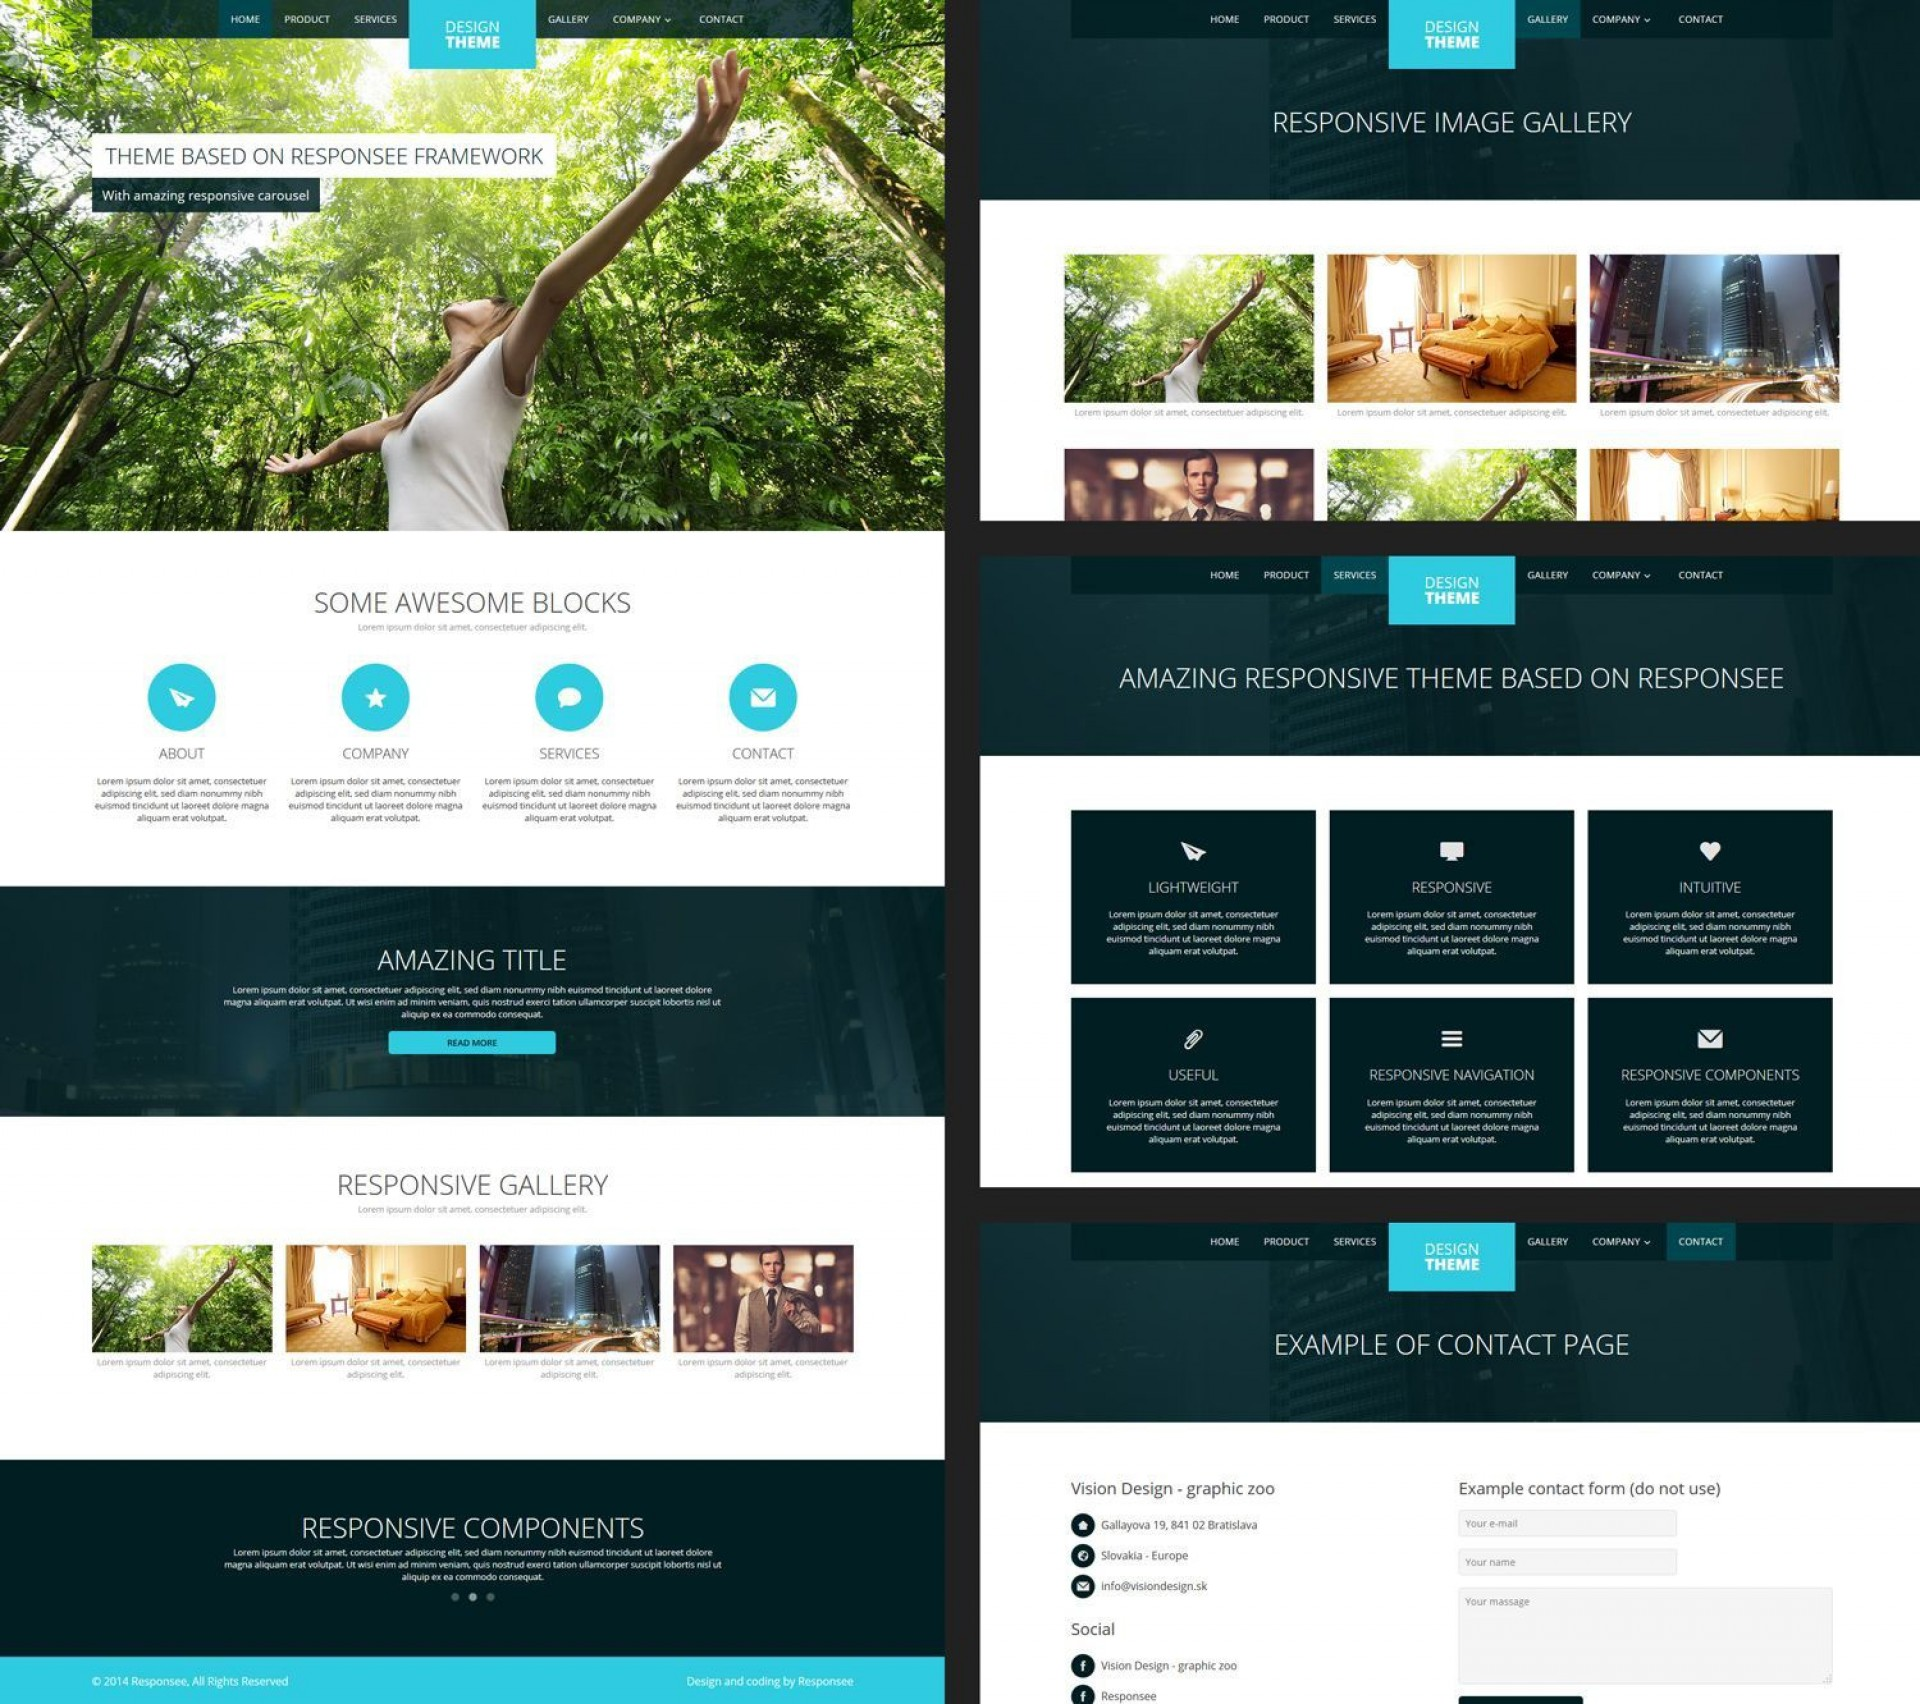 001 Archaicawful Website Design Template Free Idea  Asp.net Web Download Psd1920